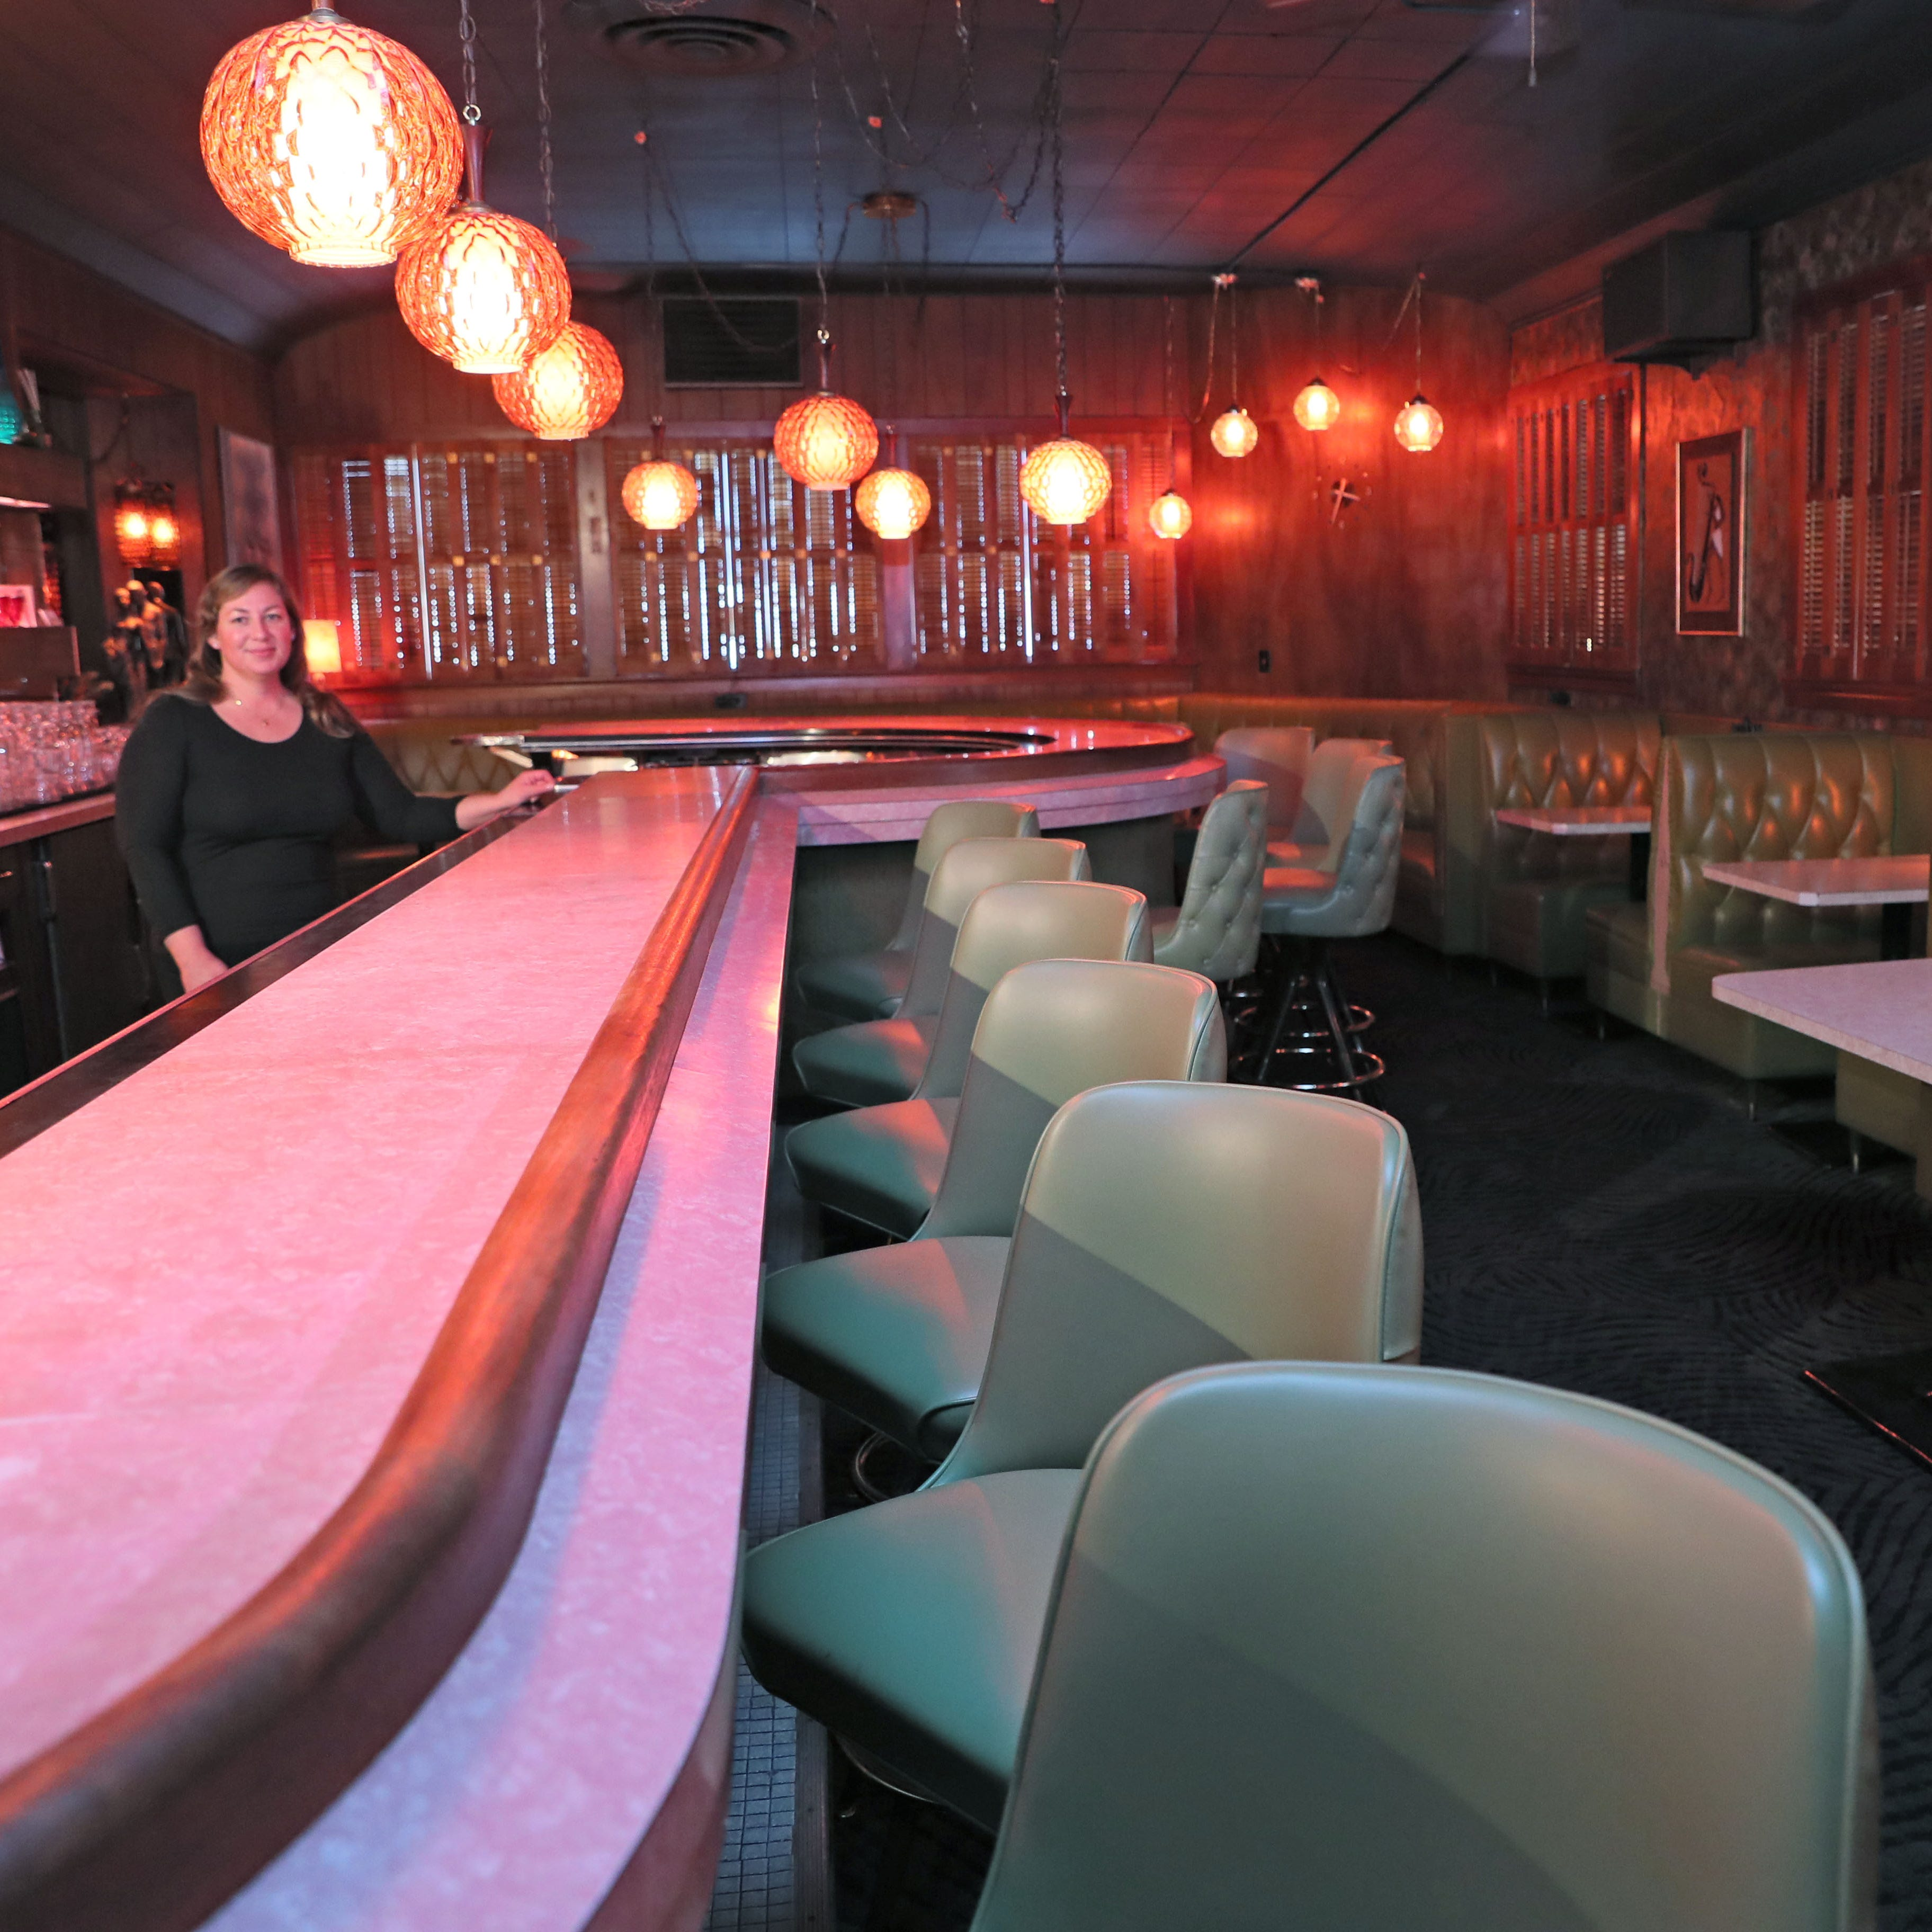 With vintage vinyl booths and ice cream drinks, At Random lounge is back, in full midcentury glory